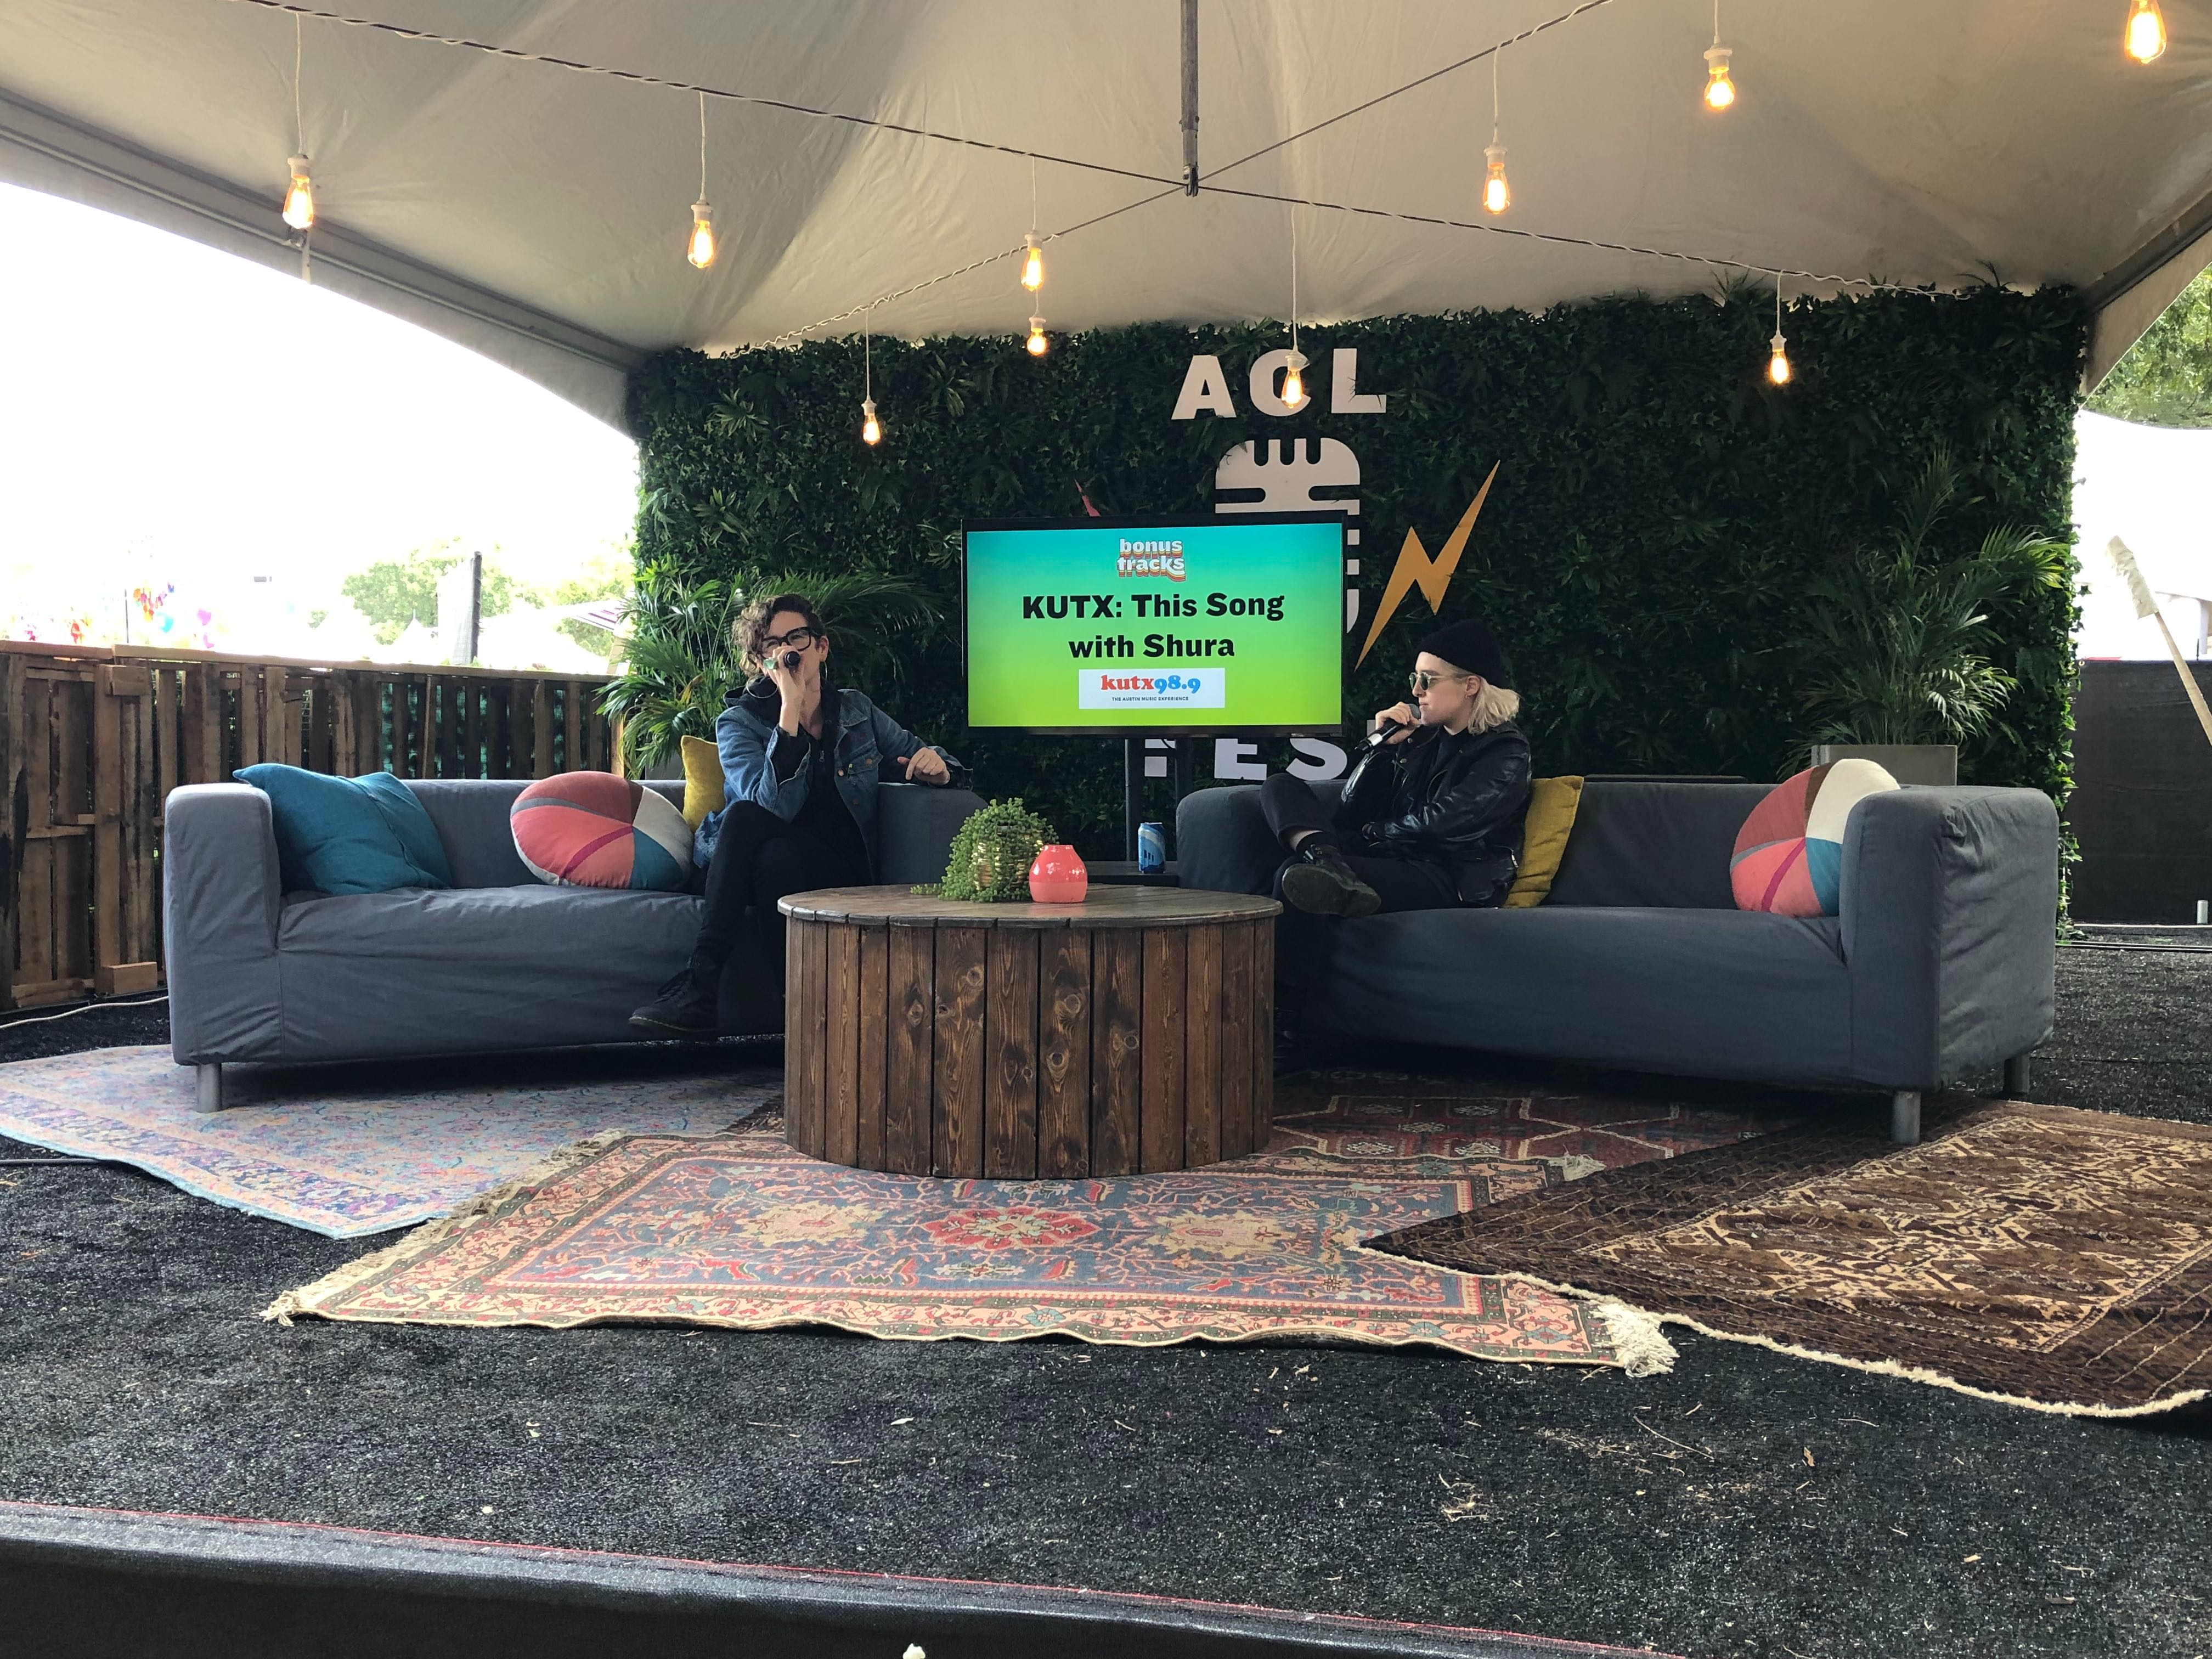 This Song ft. Shuts on the Bonus Tracks stage at ACL 2019. Host Elizabeth McQueen from KUTX interviews artists about a song that transformed them. (KXAN Photo/Amanda Dugan)